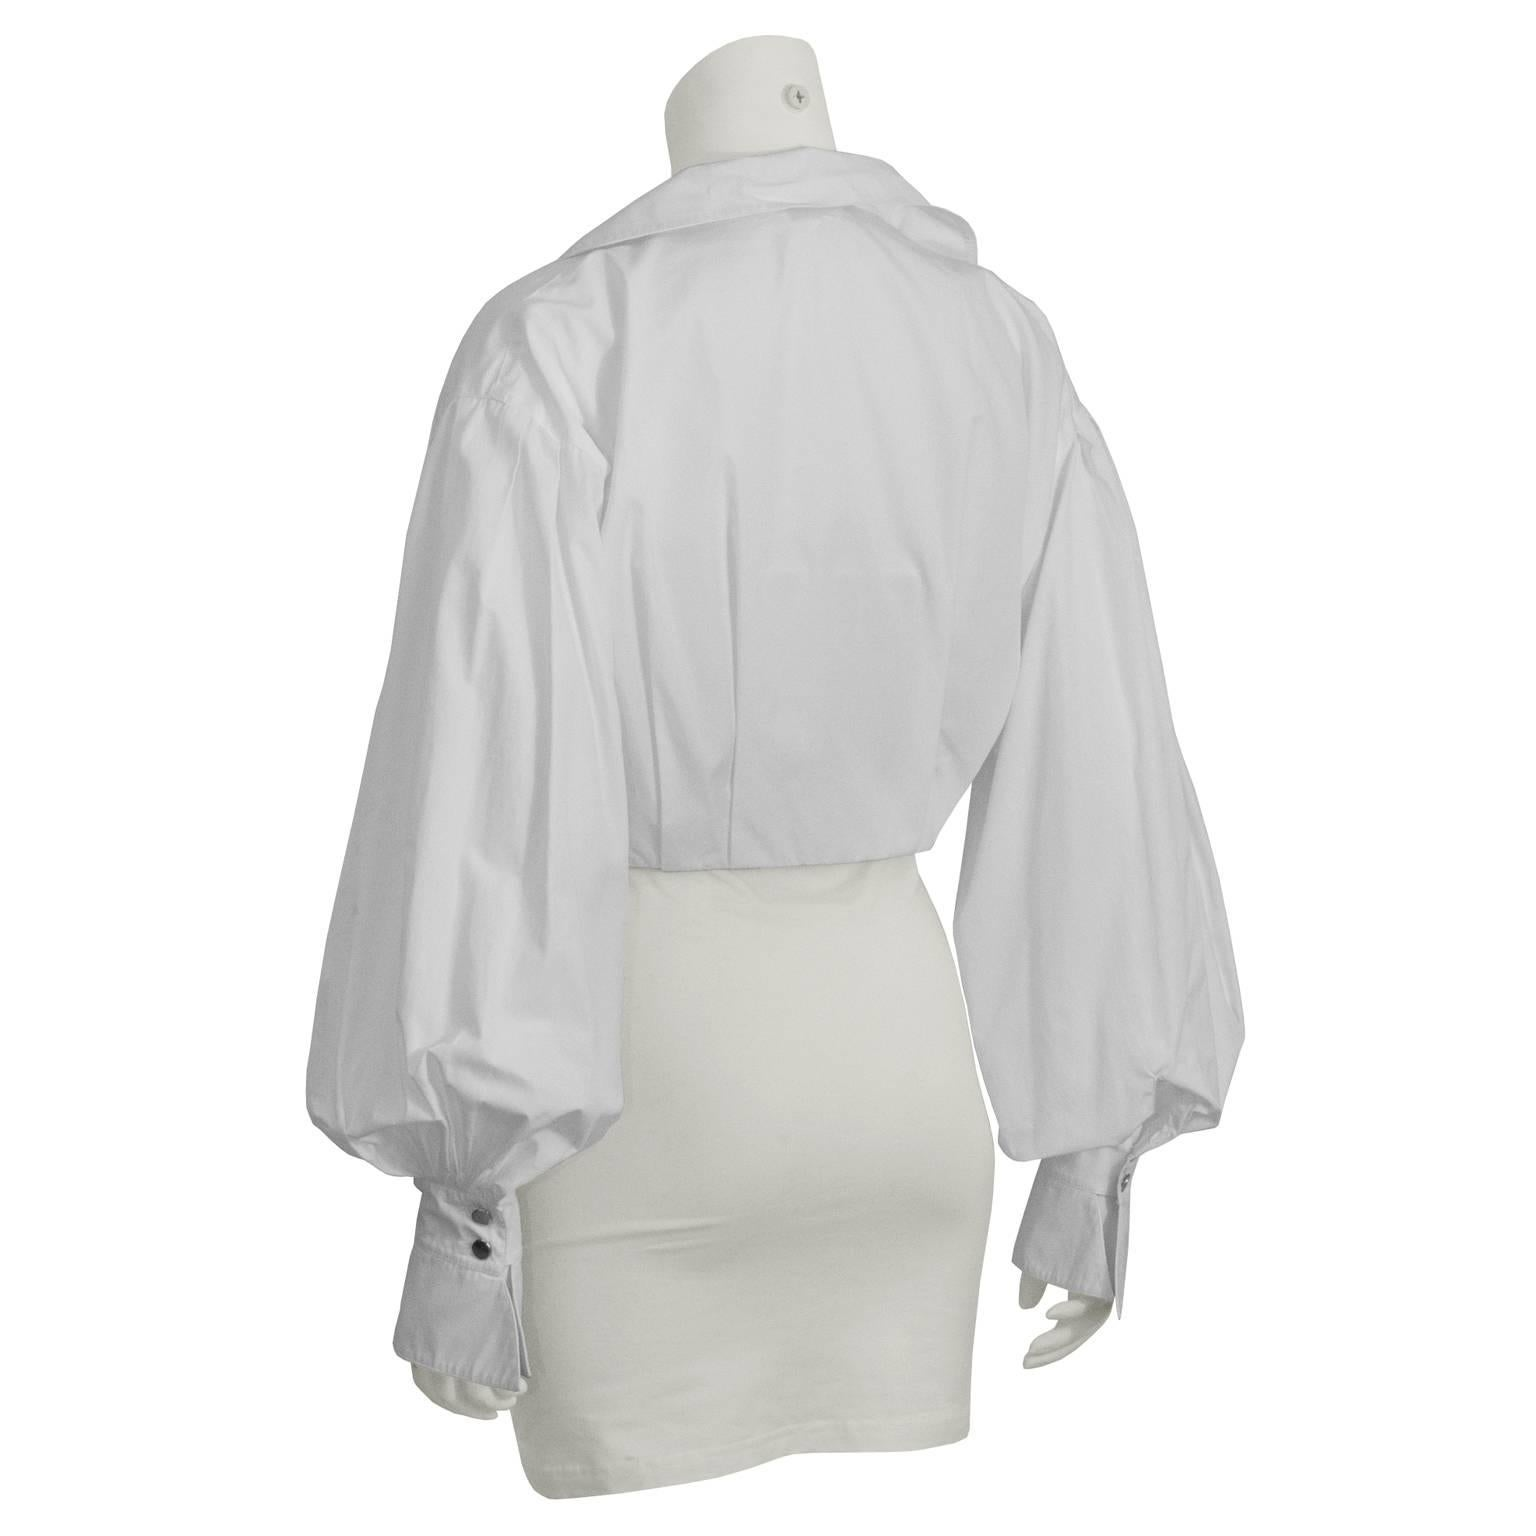 1980 s Montana White Cropped Tie-up Blouse at 1stdibs b061b66c5